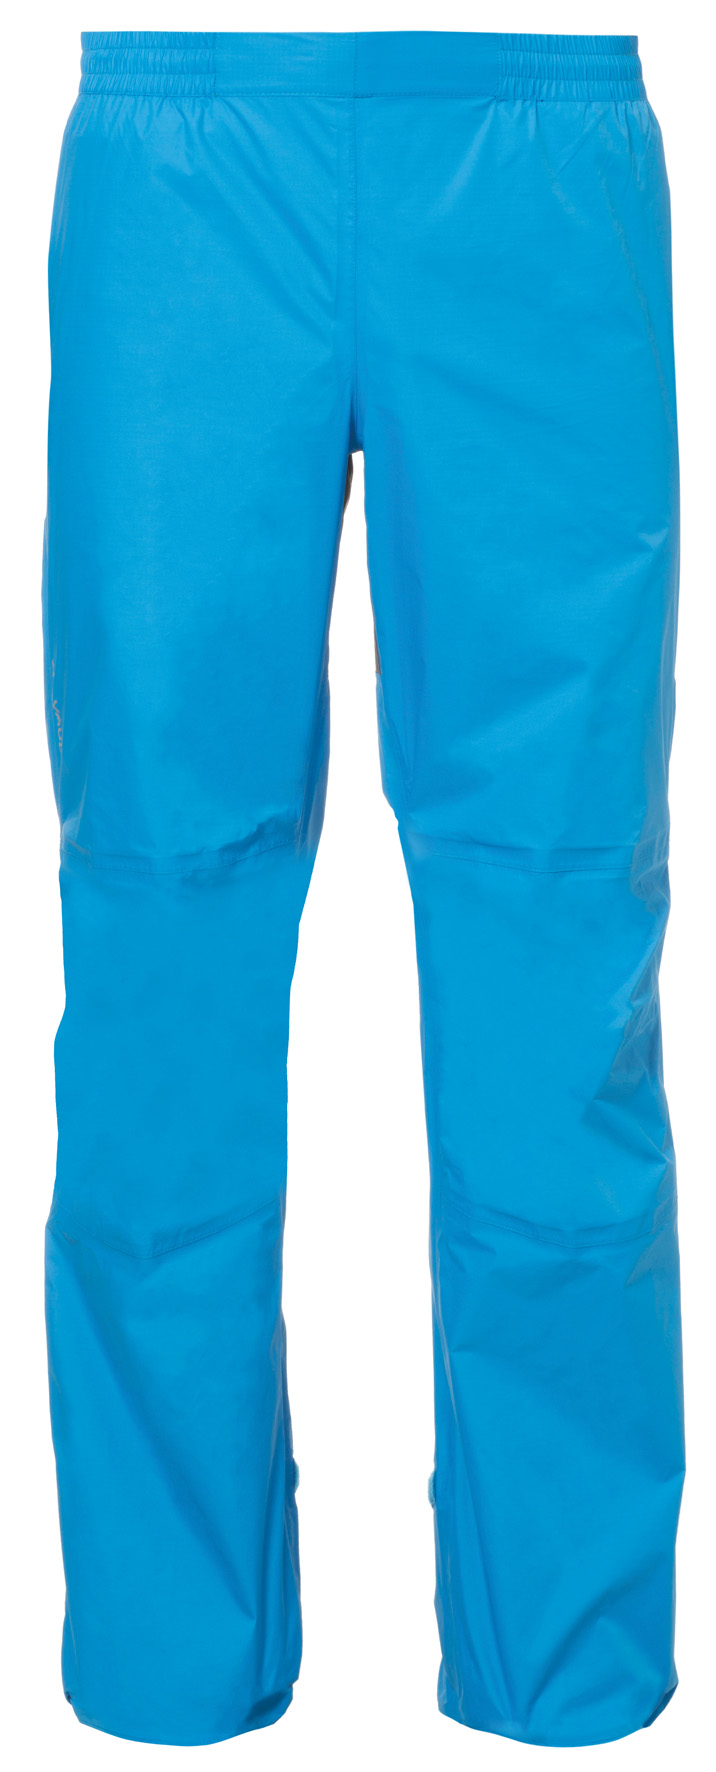 Men´s Drop Pants II teal blue Größe S - schneider-sports